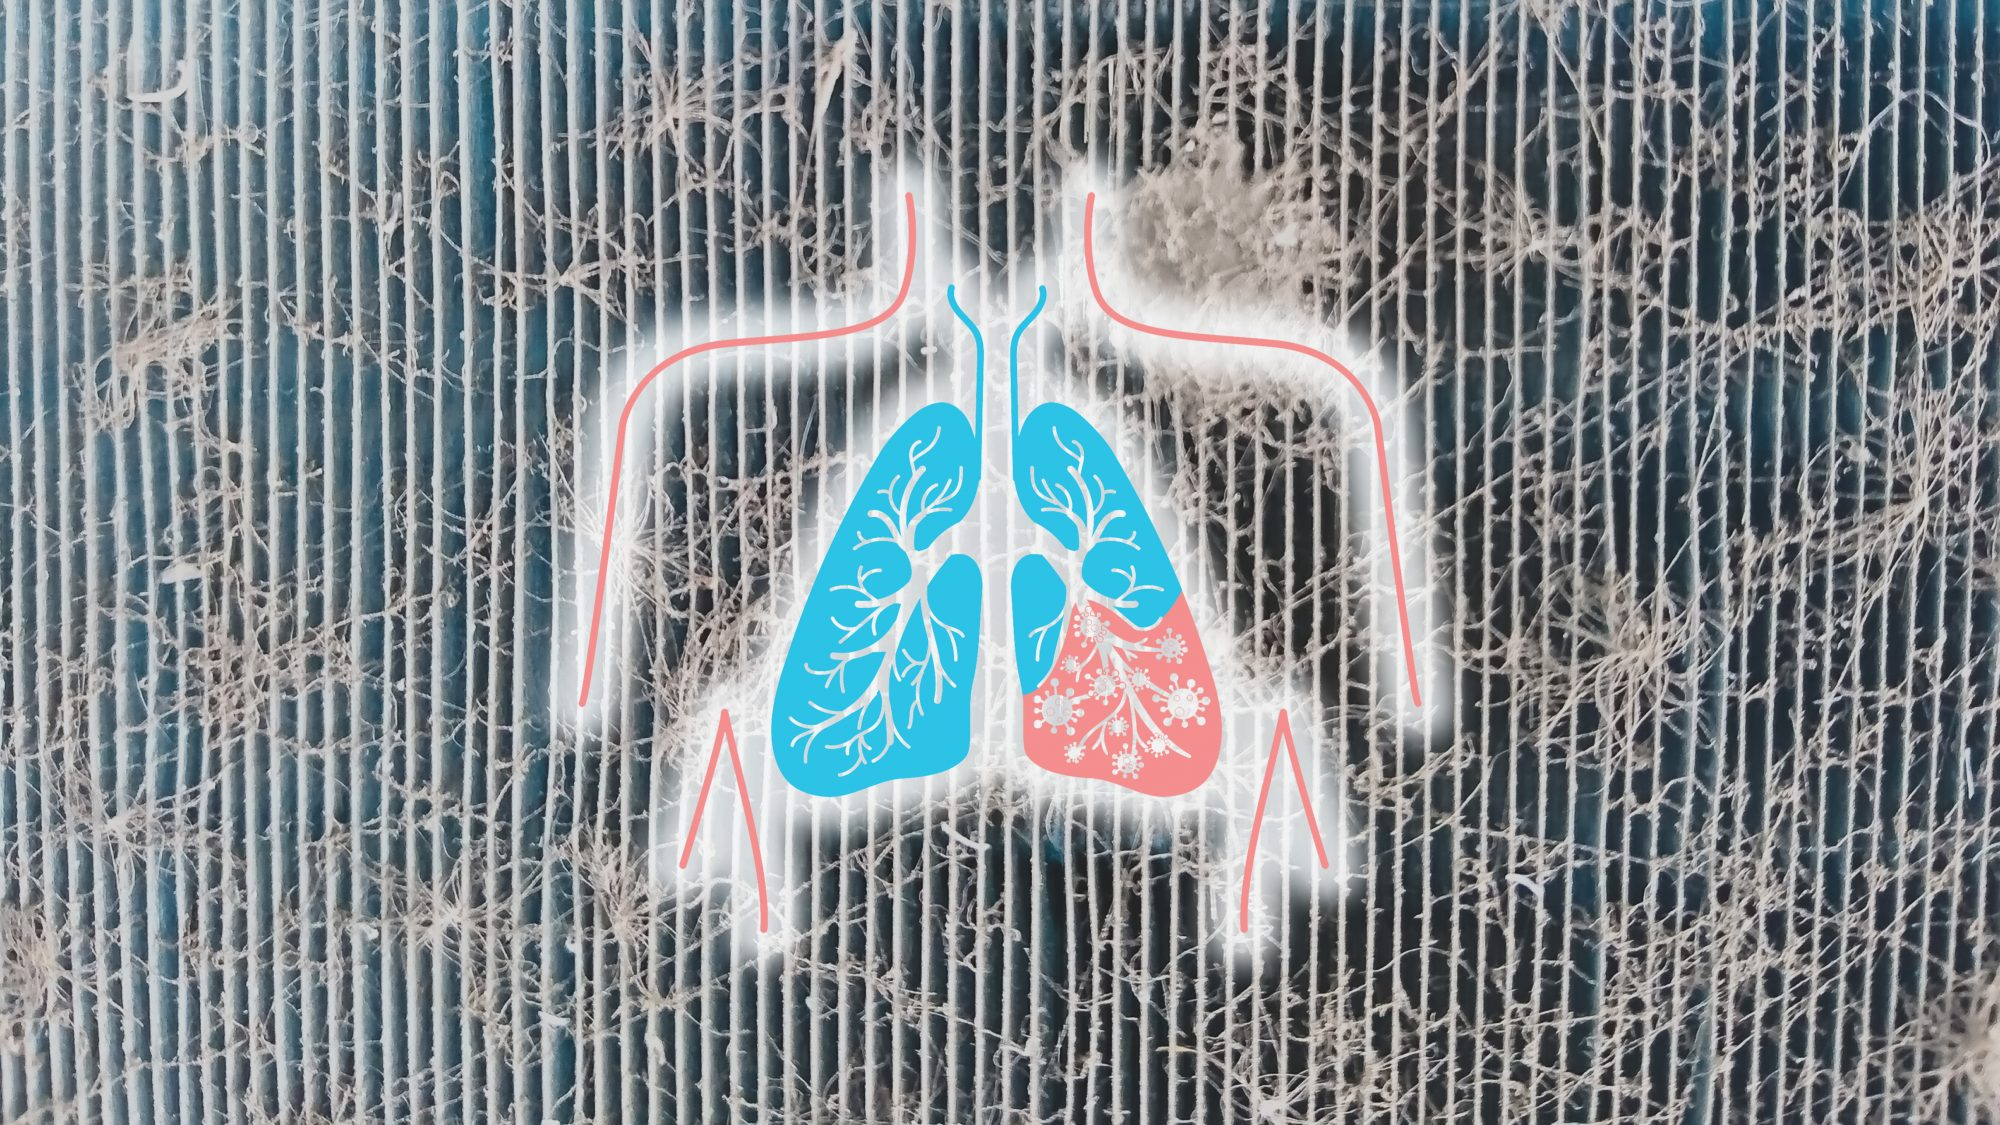 Bronchitis vs. Pneumonia: Here's How to Tell the Difference